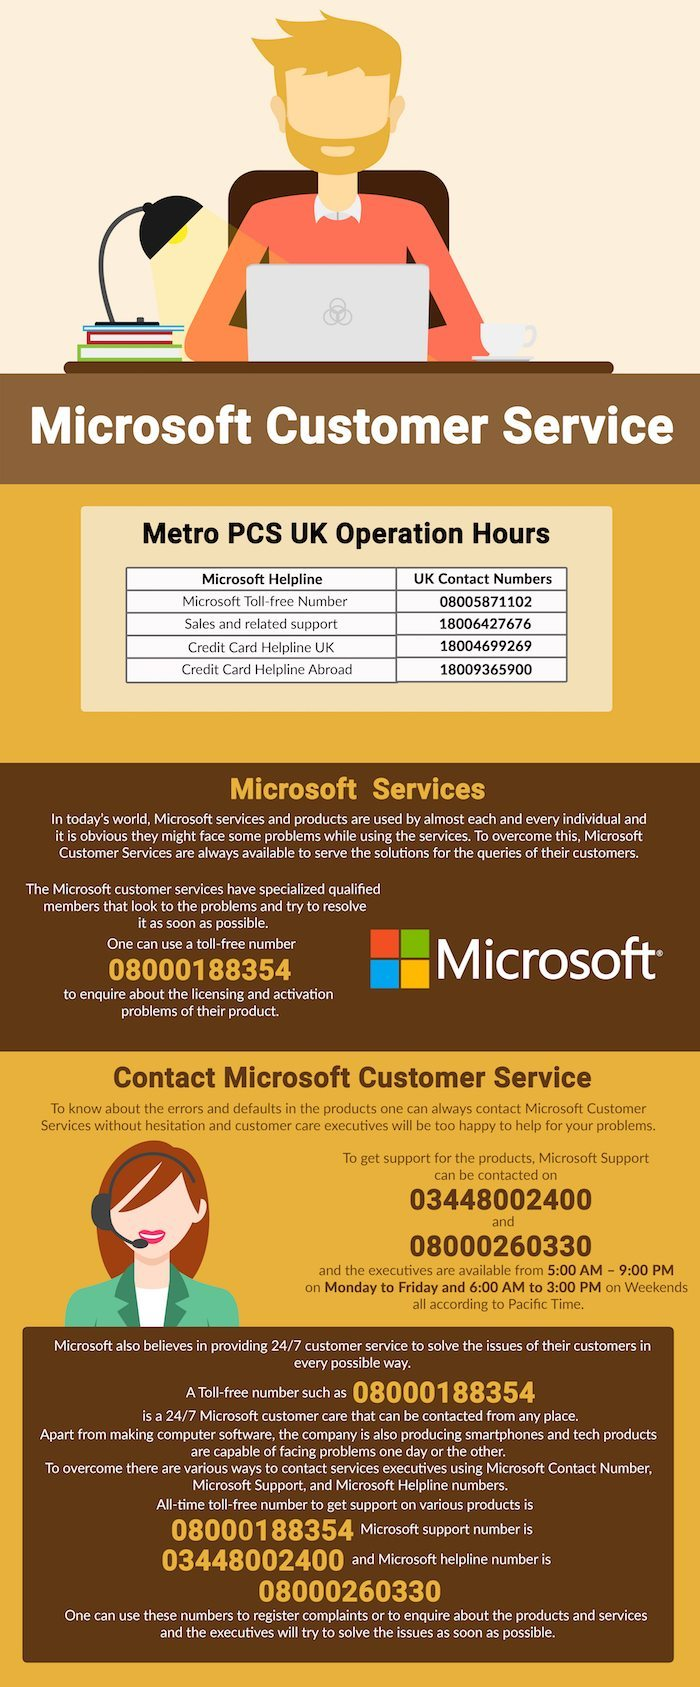 Microsoft XBOX Contact Helpline